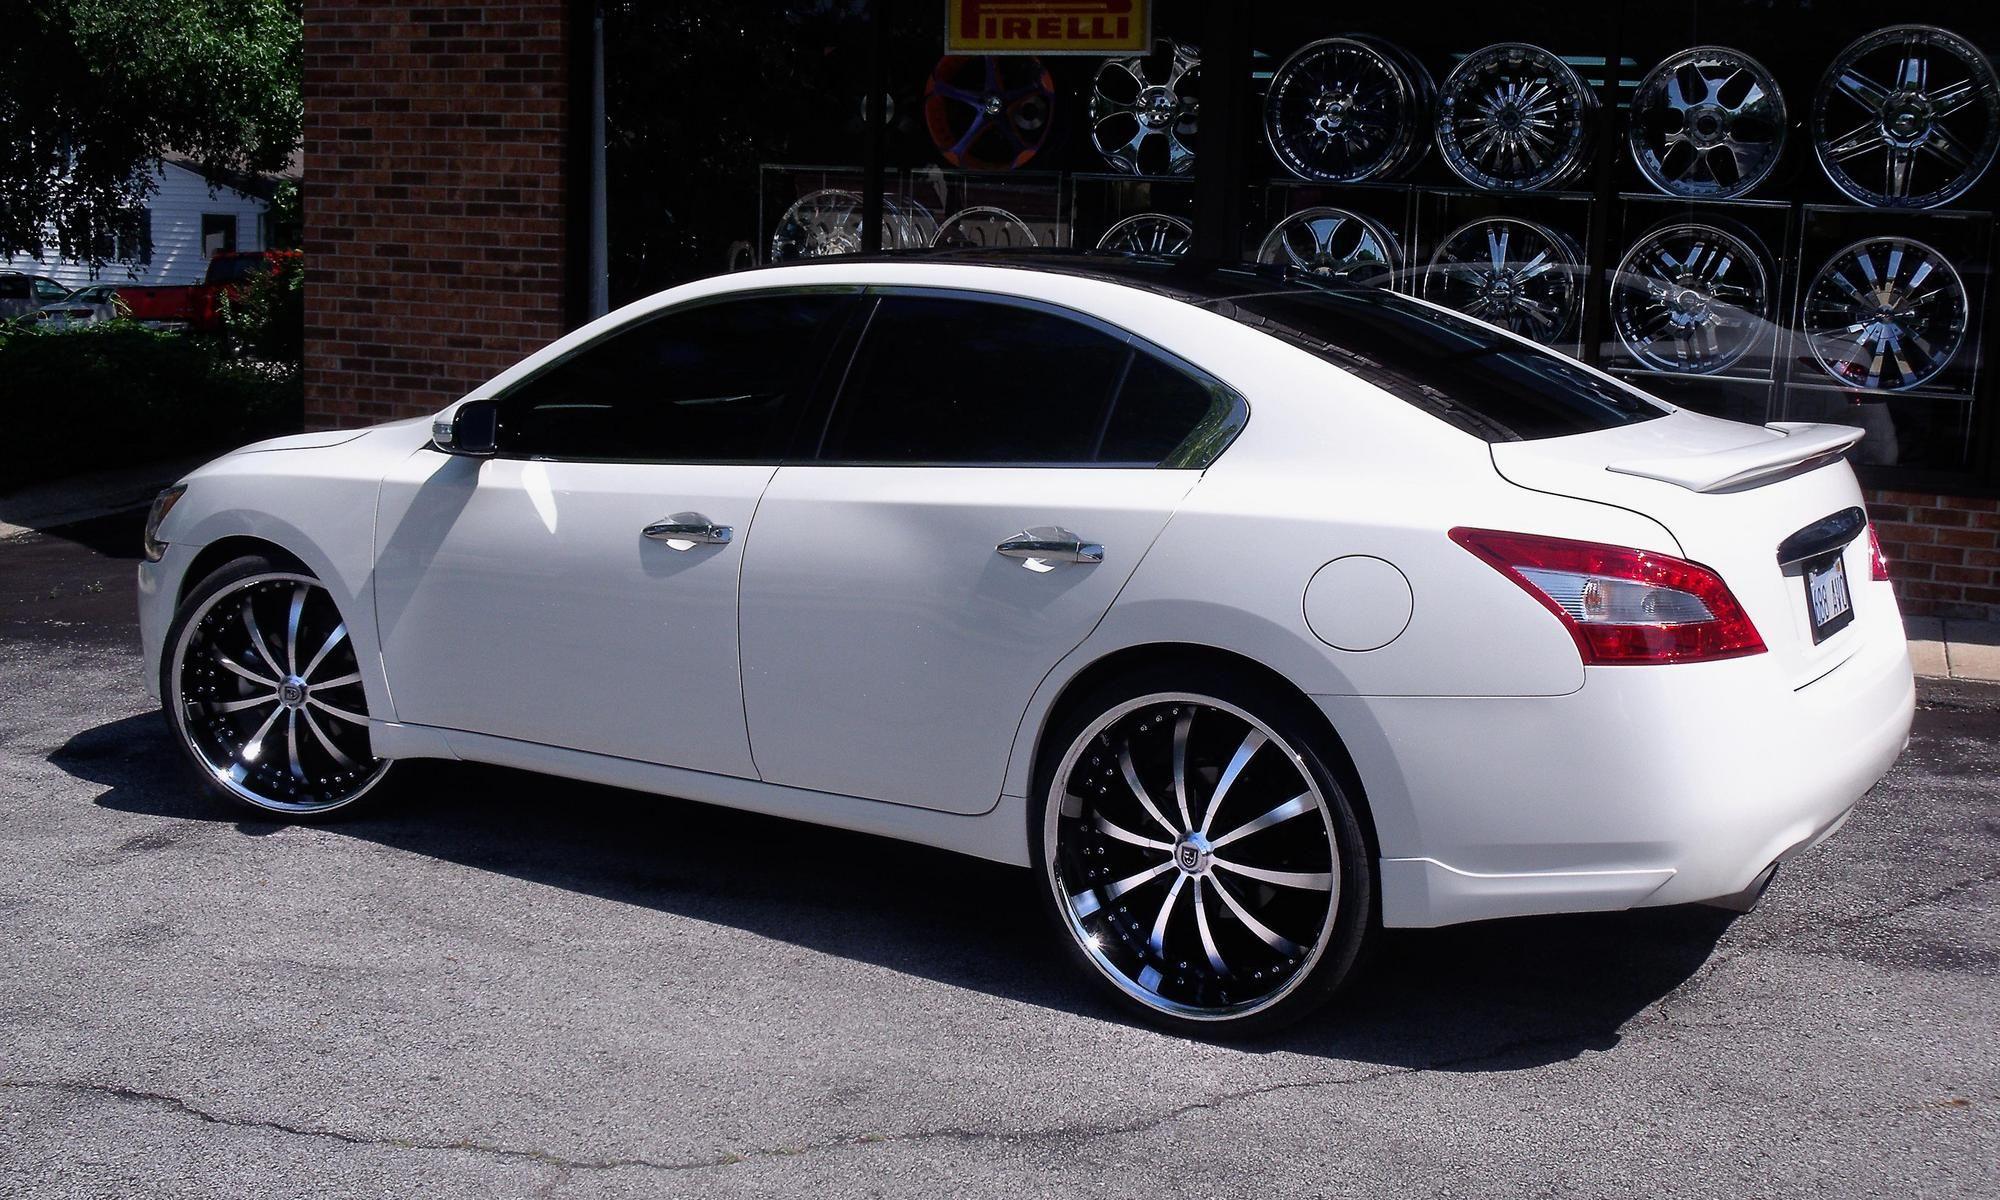 Lexani Wheels The Leader In Custom Luxury Wheels White 2011 Nissan Maxima With Machine And Black Lss 10 Nissan Maxima 2011 Nissan Maxima Nissan